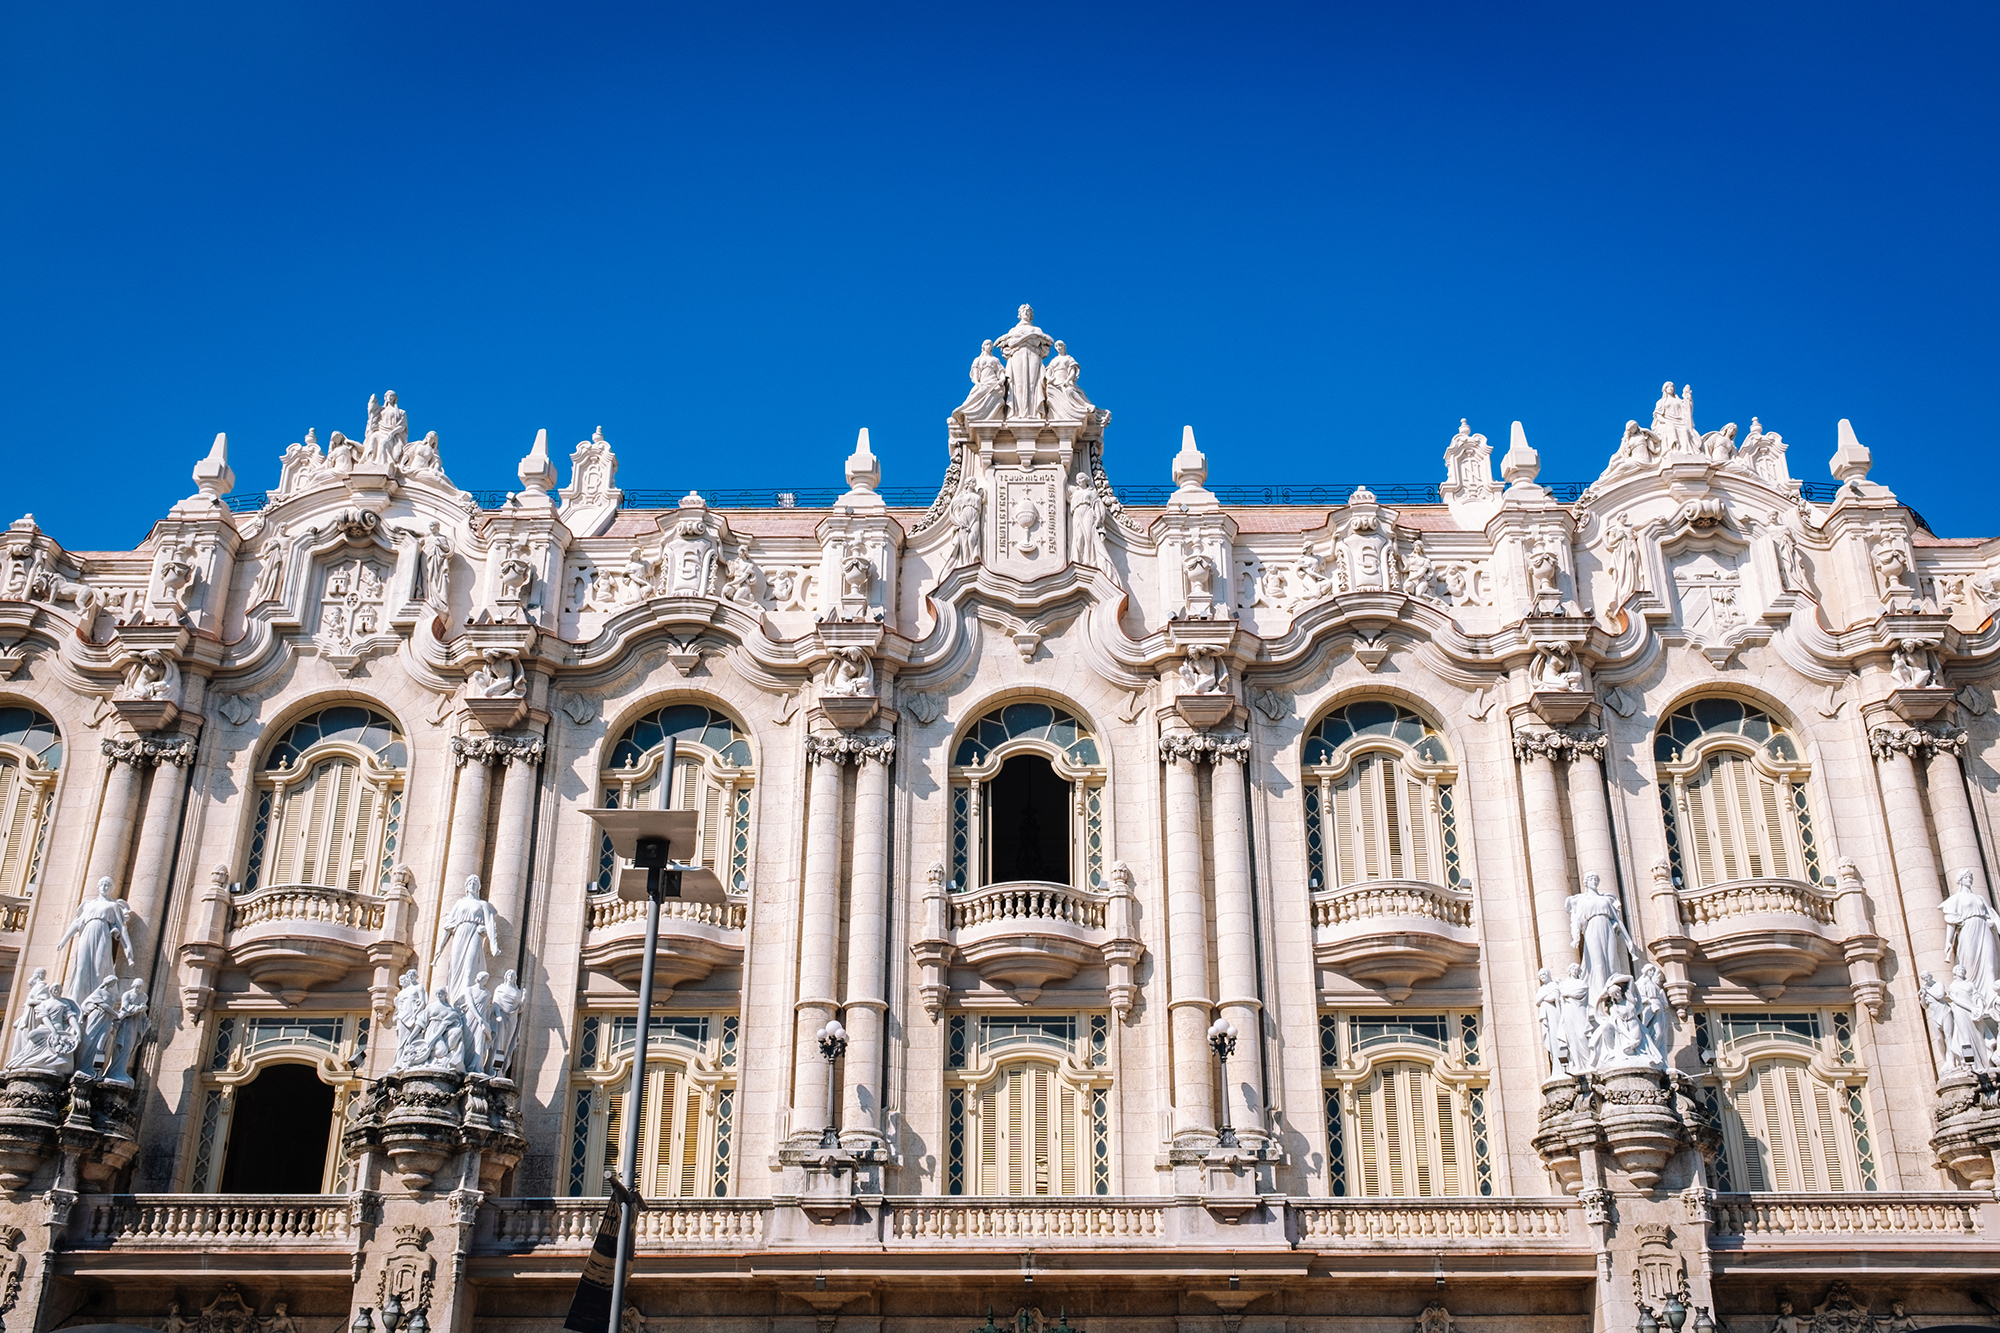 Facade of the Gran Teatro de La Habana Alicia Alonso